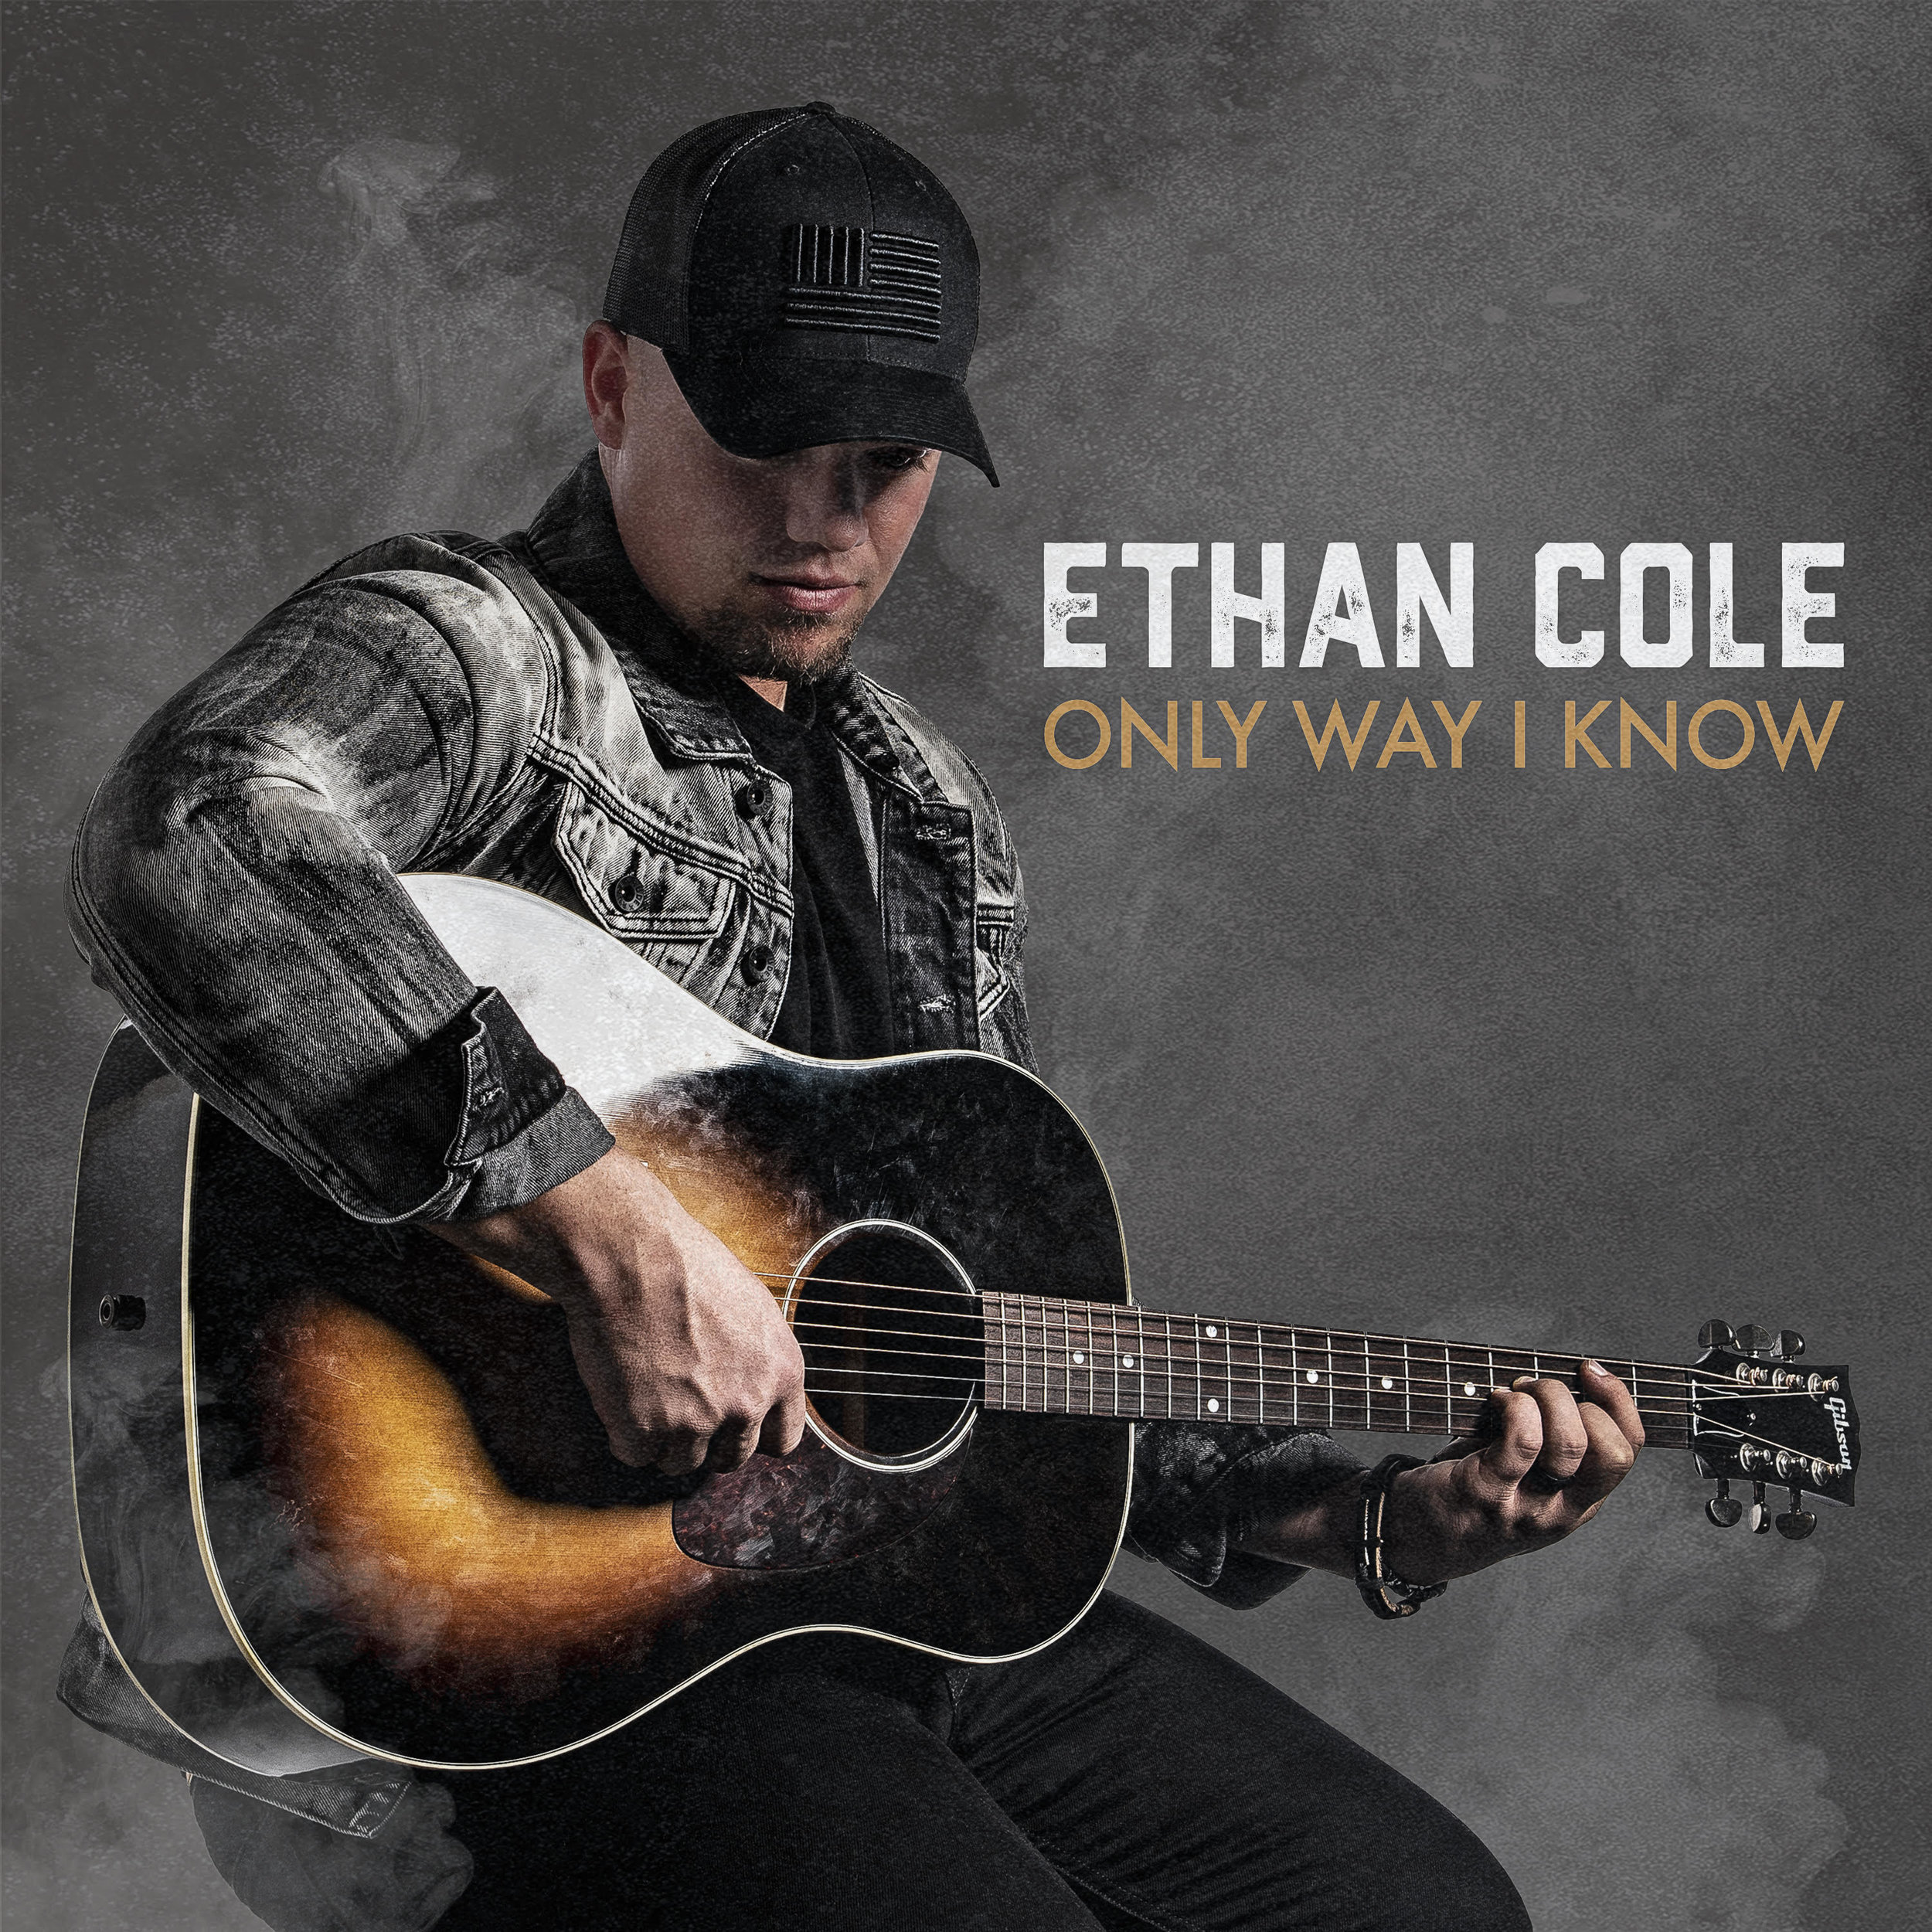 - GET ETHAN'S DEBUT ALBUM HERE!